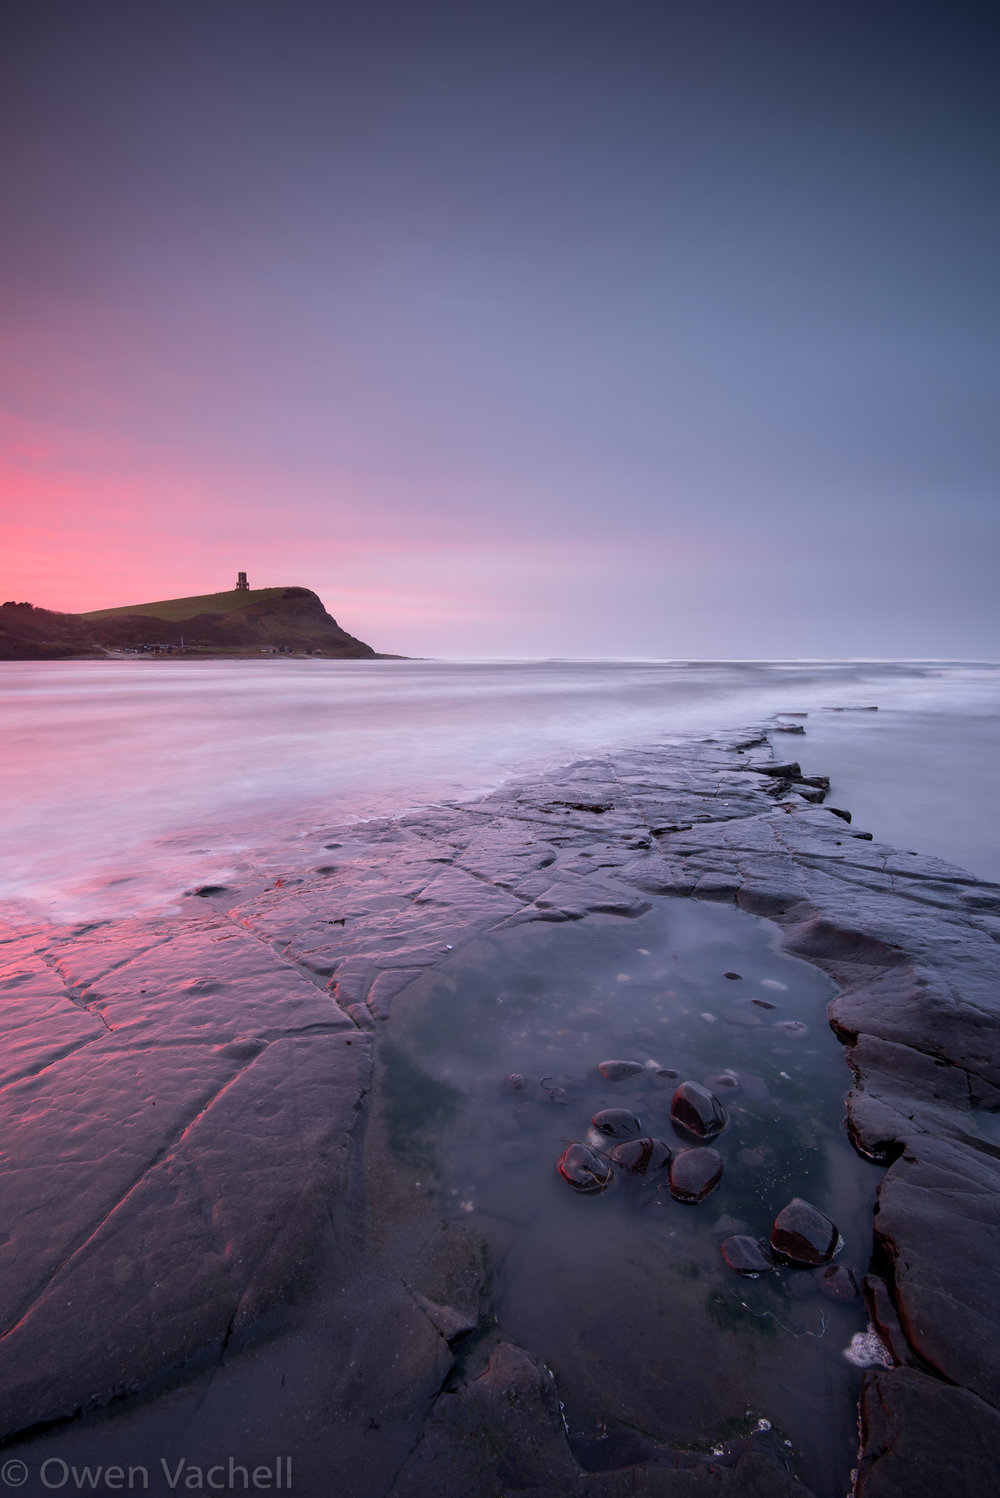 The iconic Kimmeridge Bay. Shot at f/11 to achieve maximum sharpness from the stones in the foreground all the way to Clavell's Tower, the furthest element in the scene.